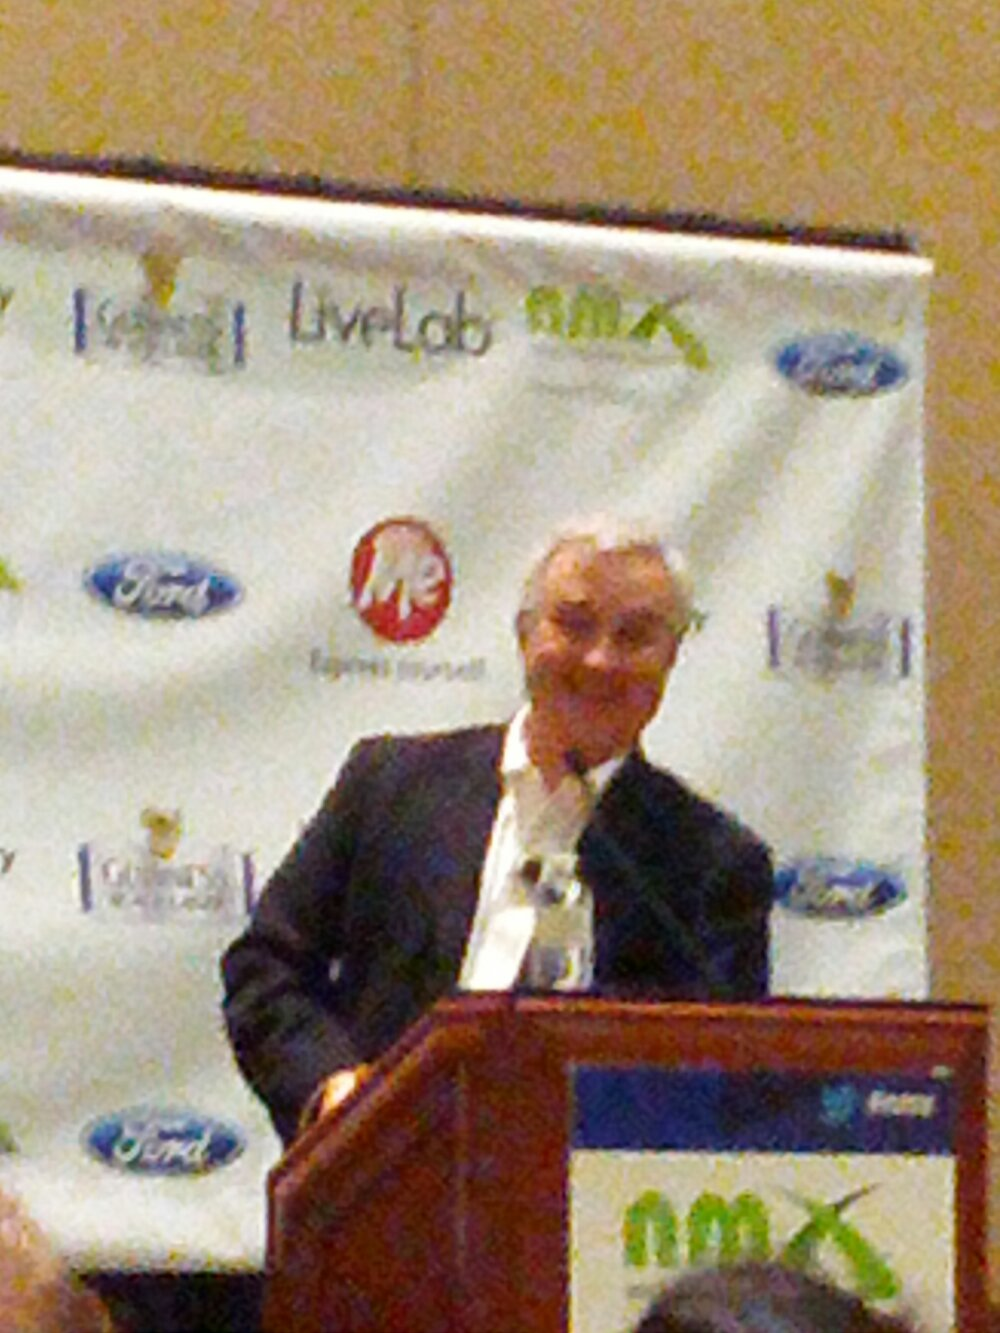 Leo LaPorte Hosting the Podcast Awards